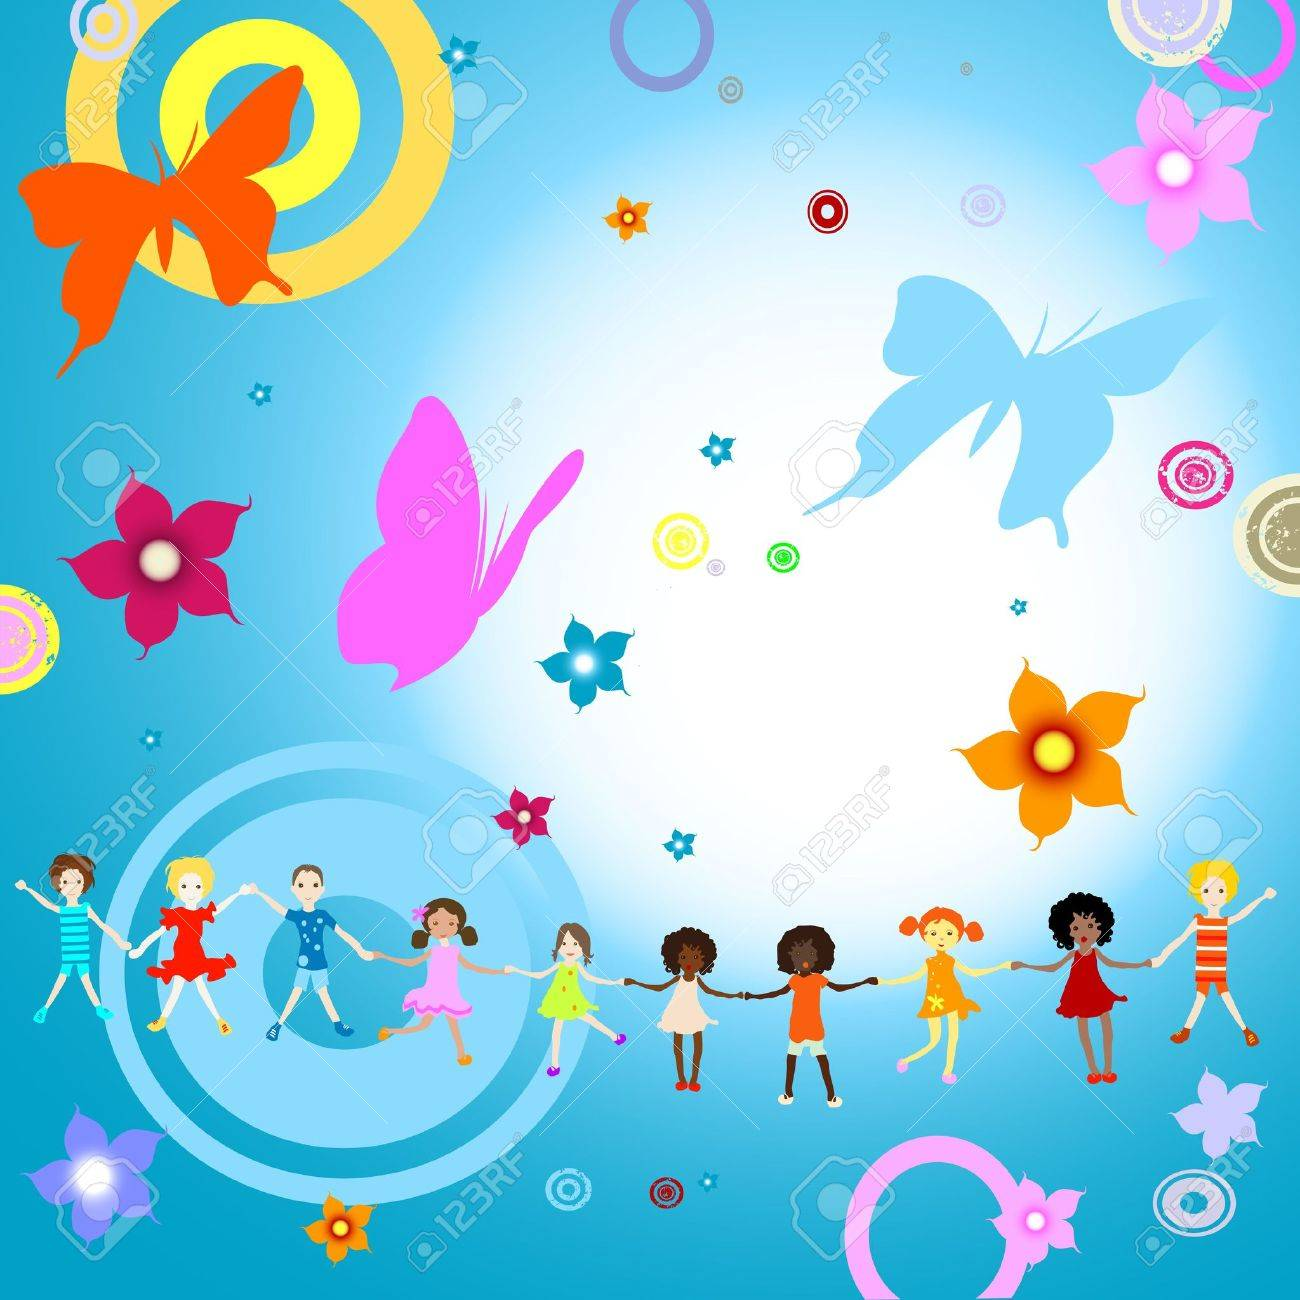 group of kids on abstract background with flowers and butterflies